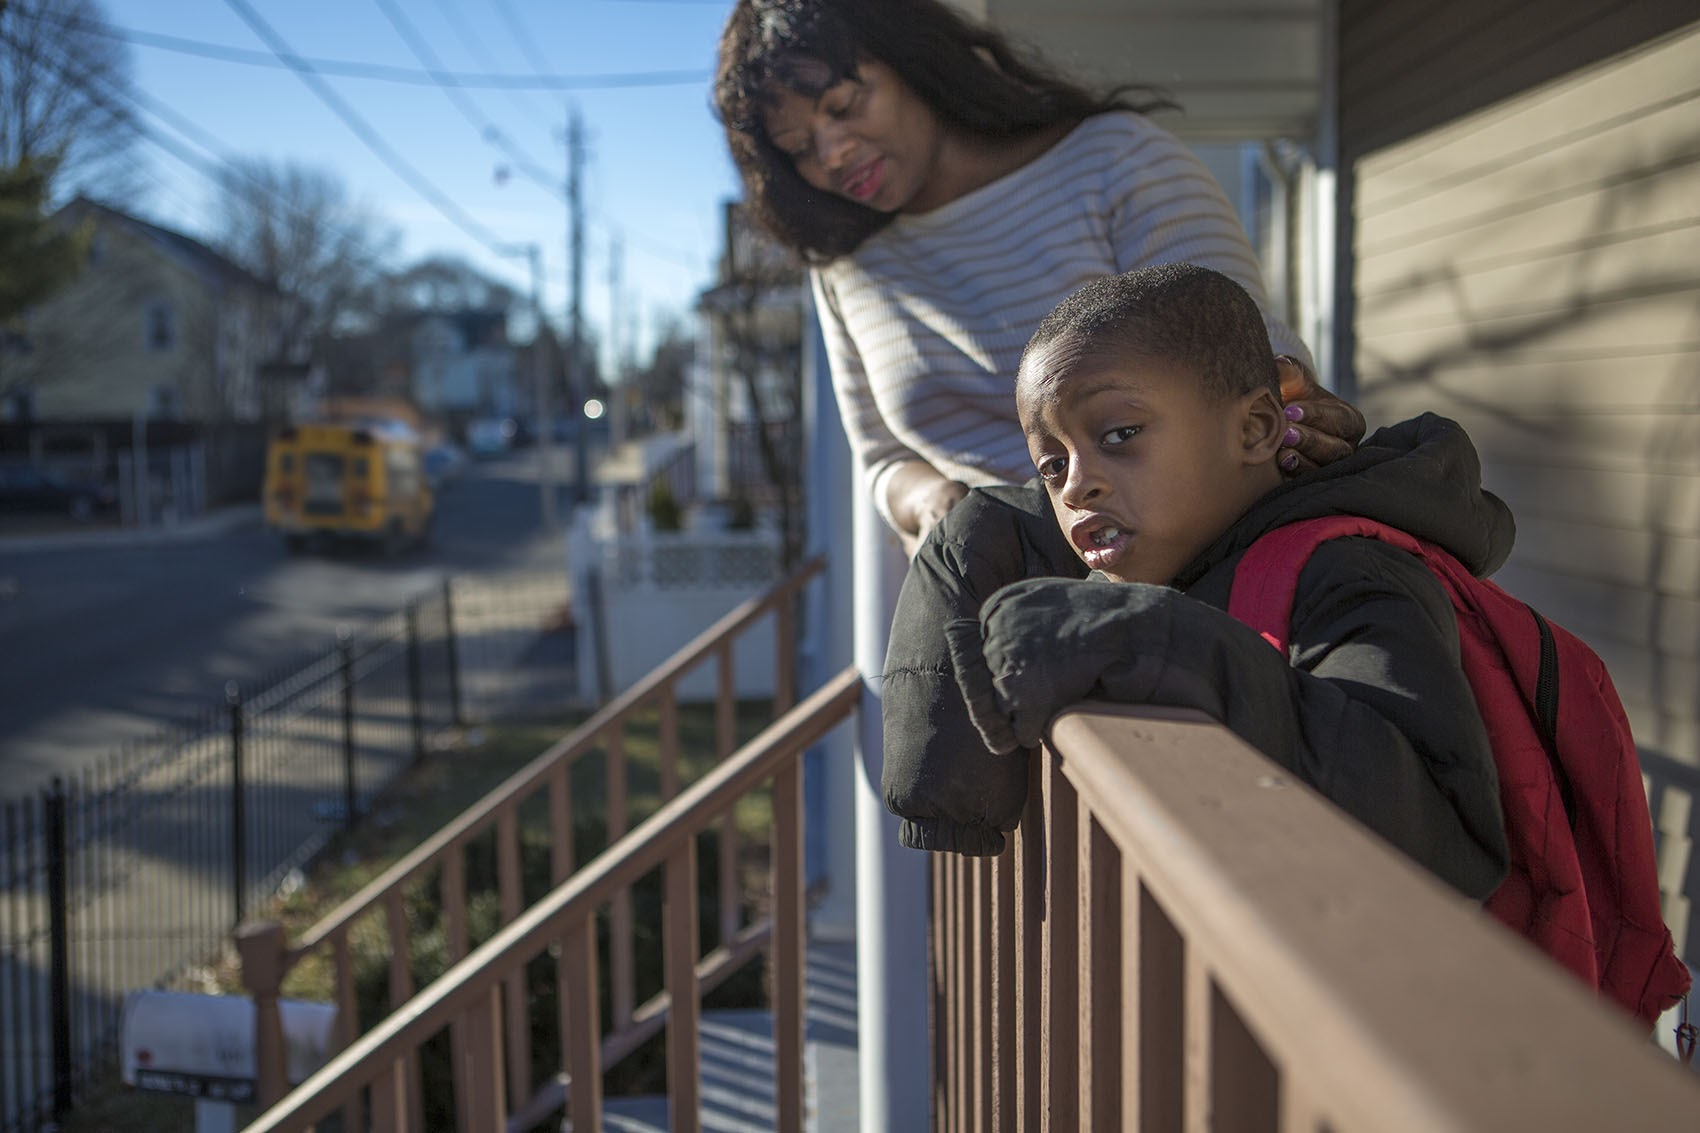 On the front porch, a 5-year-old student from Dorchester watches for his school bus with his mother in 2016. (Jesse Costa/WBUR)